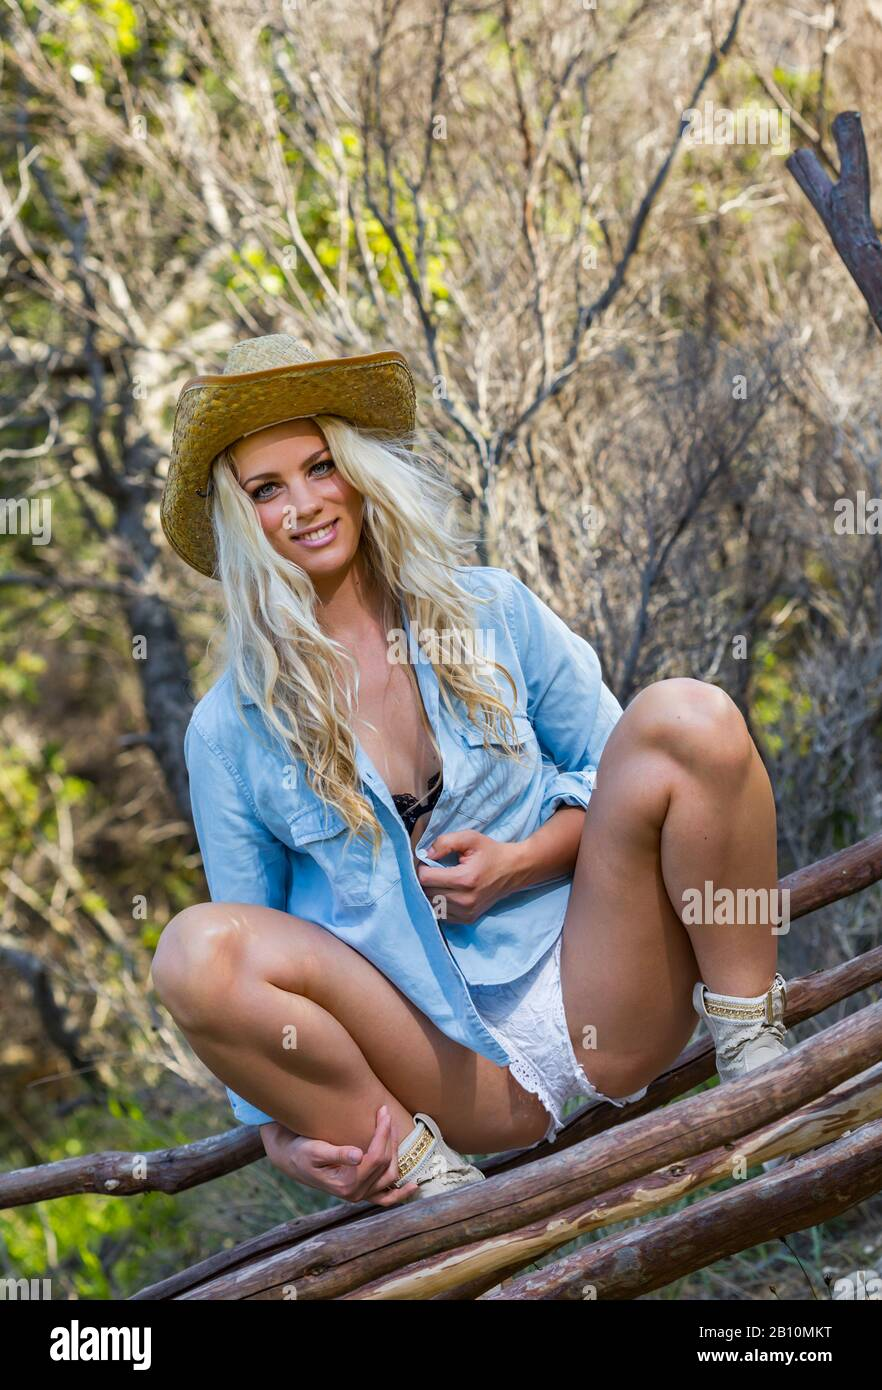 Squatting squat squatter wide apart spread knees legs smiling looking at camera eyeshot eye eyes contact countrygirl country-girl stetson Western hat Stock Photo